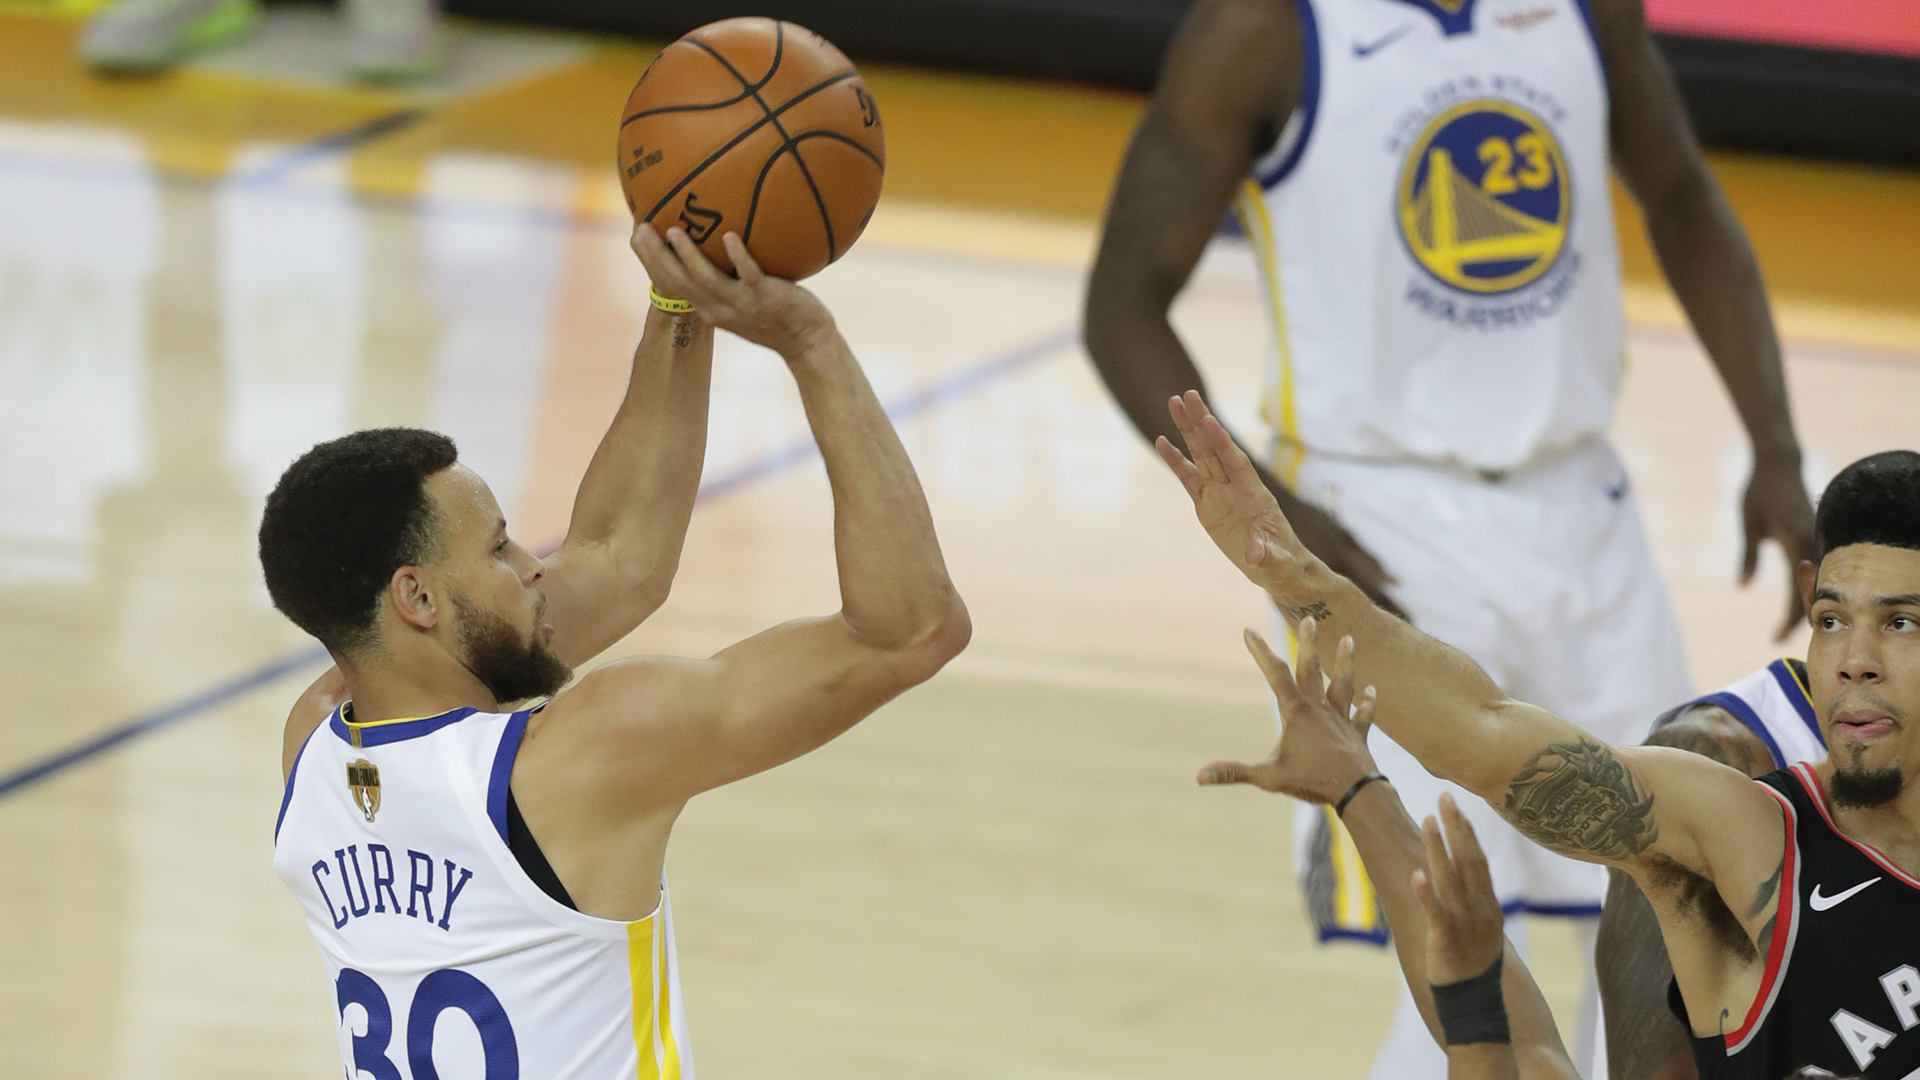 2d3f8c1d0b4 Dell, Sonya Curry recount how they didn't want Dubs to draft Steph ...